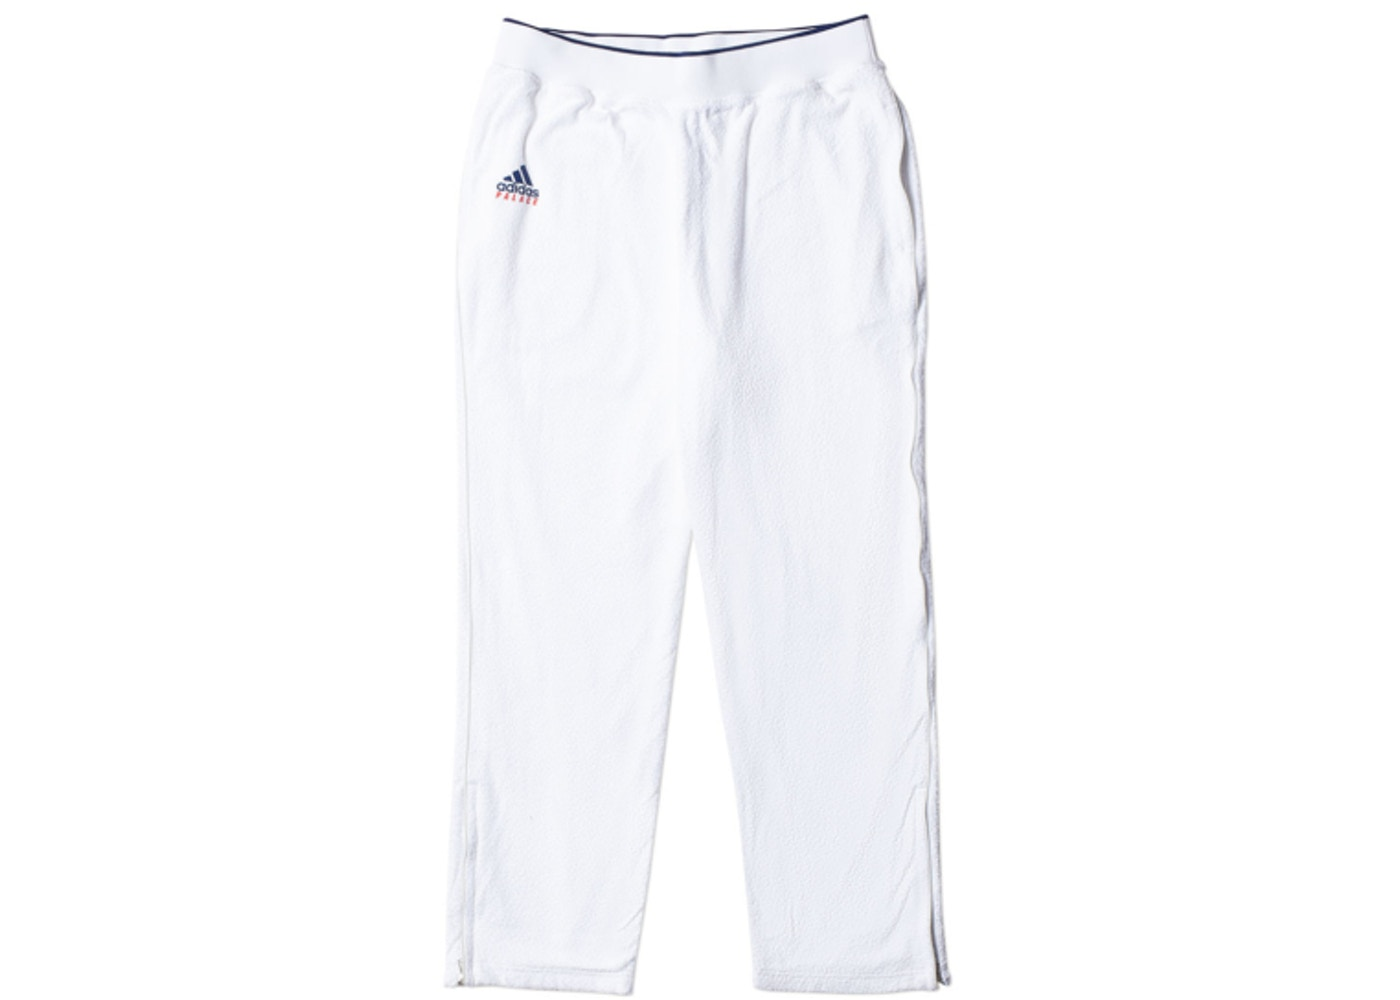 112833a09999 Palace adidas On Court Towel Track Pant White - SS18